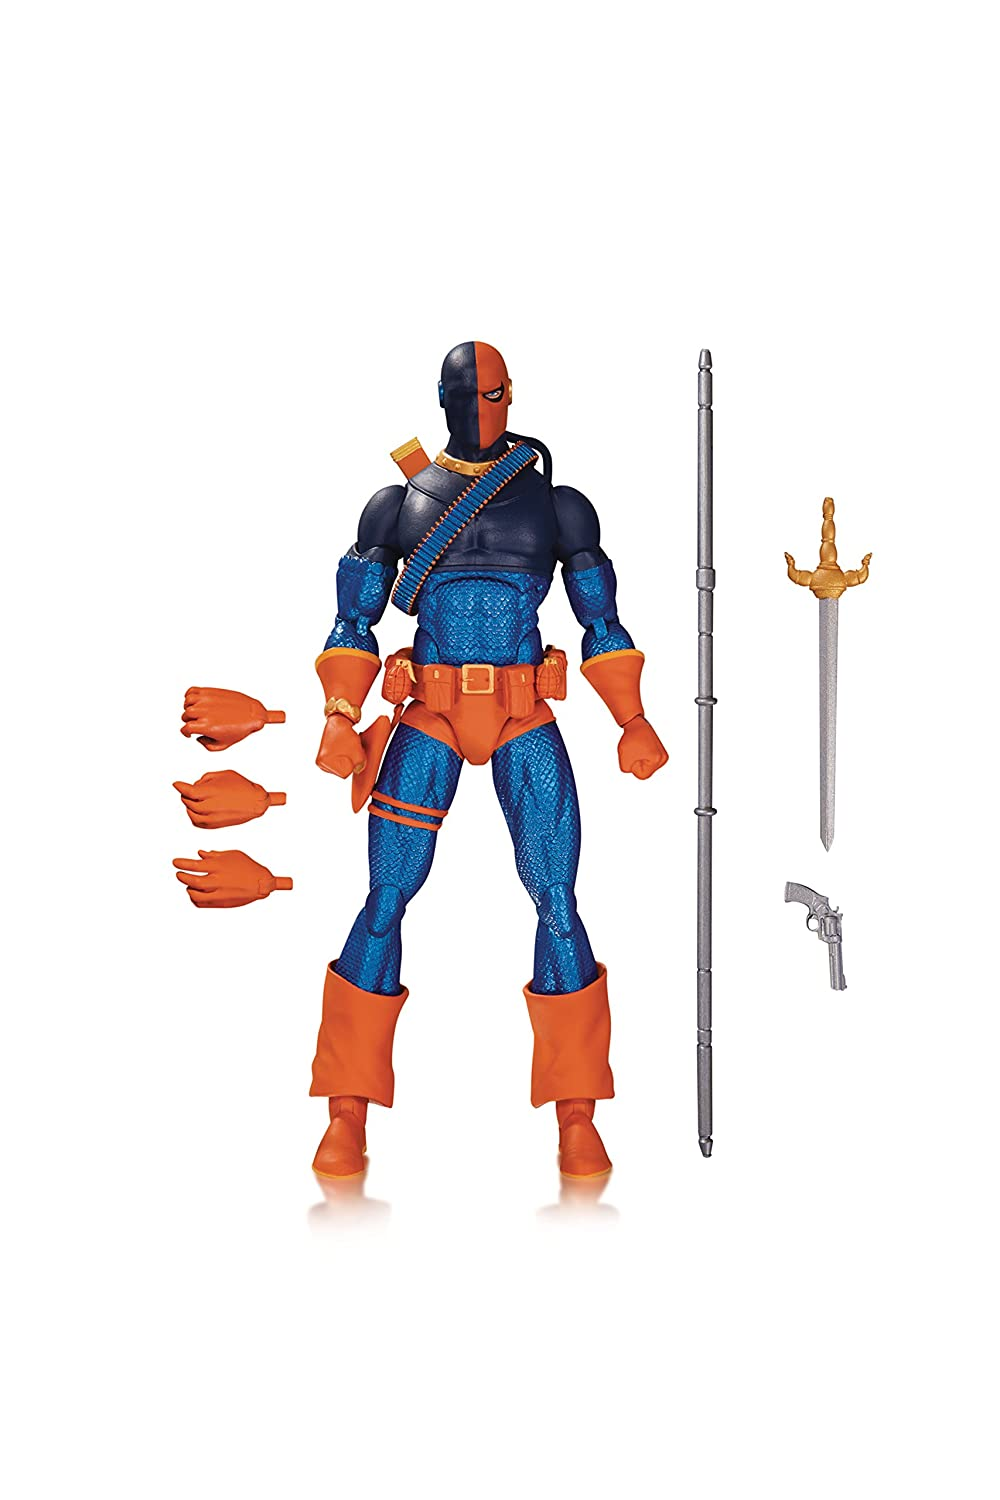 DC Collectibles OCT160344 DC Comics Icons Deathstroke from Teen Titans The Judas Contract Action Figure MAR160312